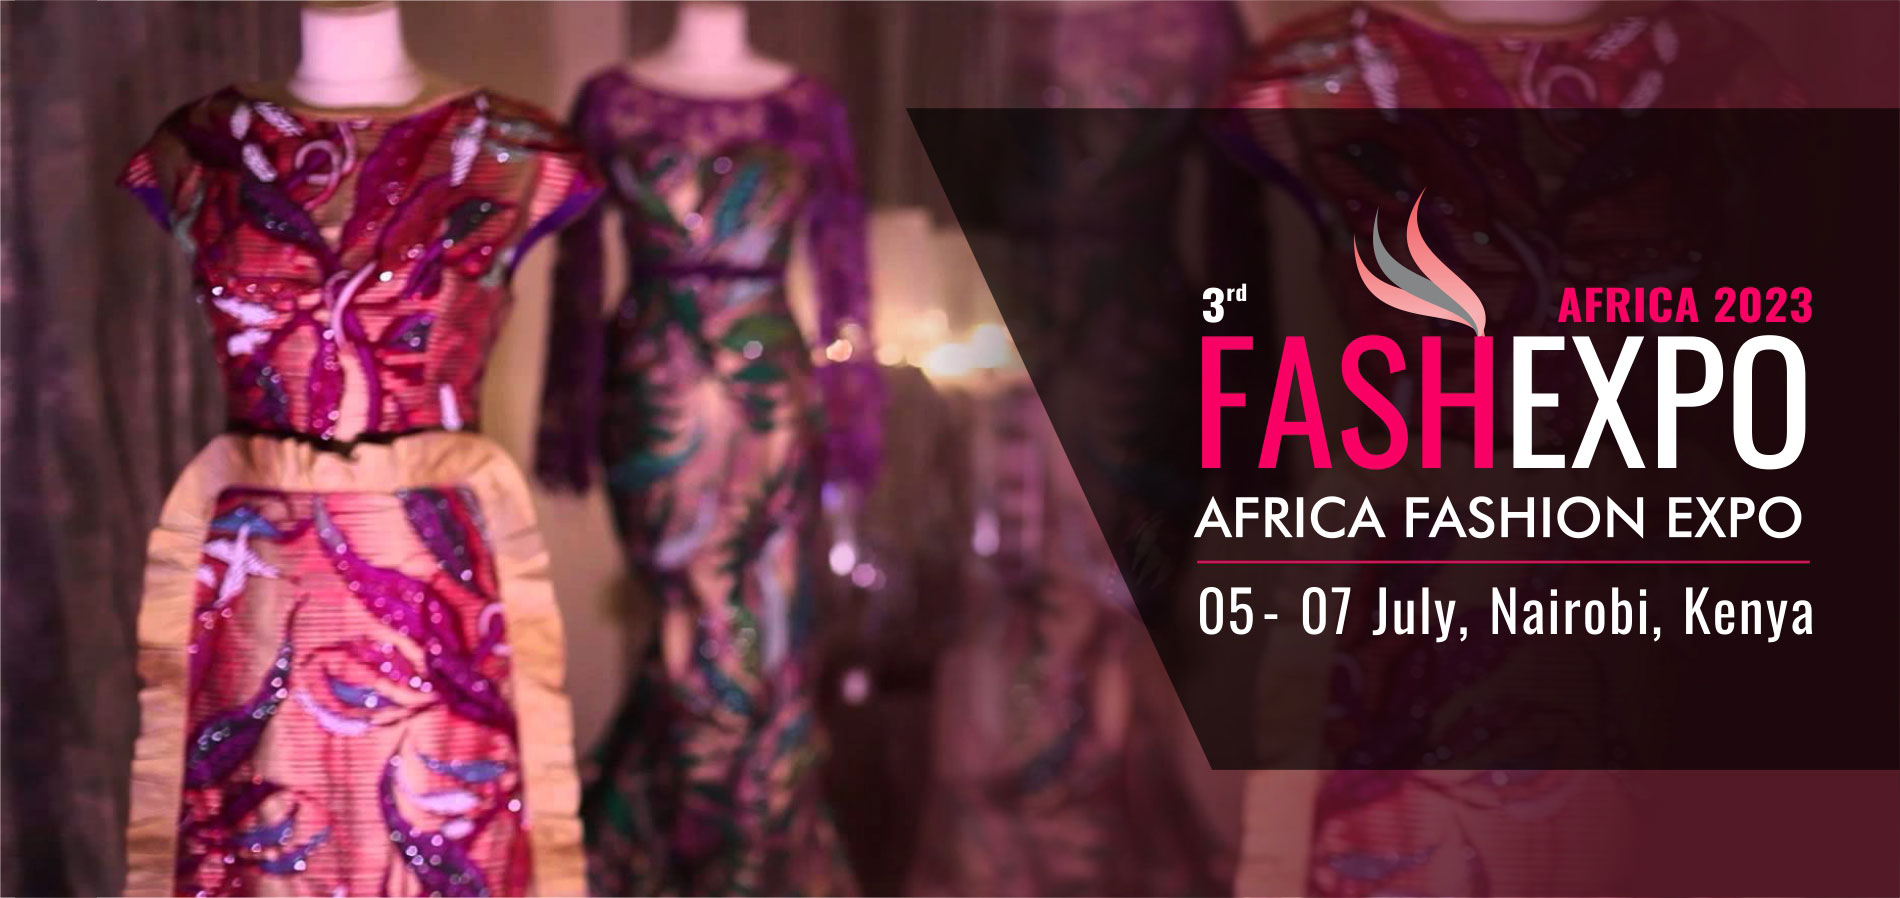 Fashexpo Kenya 2021 Fashexpo Africa Textiles Kenya Fashion Textiles And Garments Exhibition International Fashion Exhibition